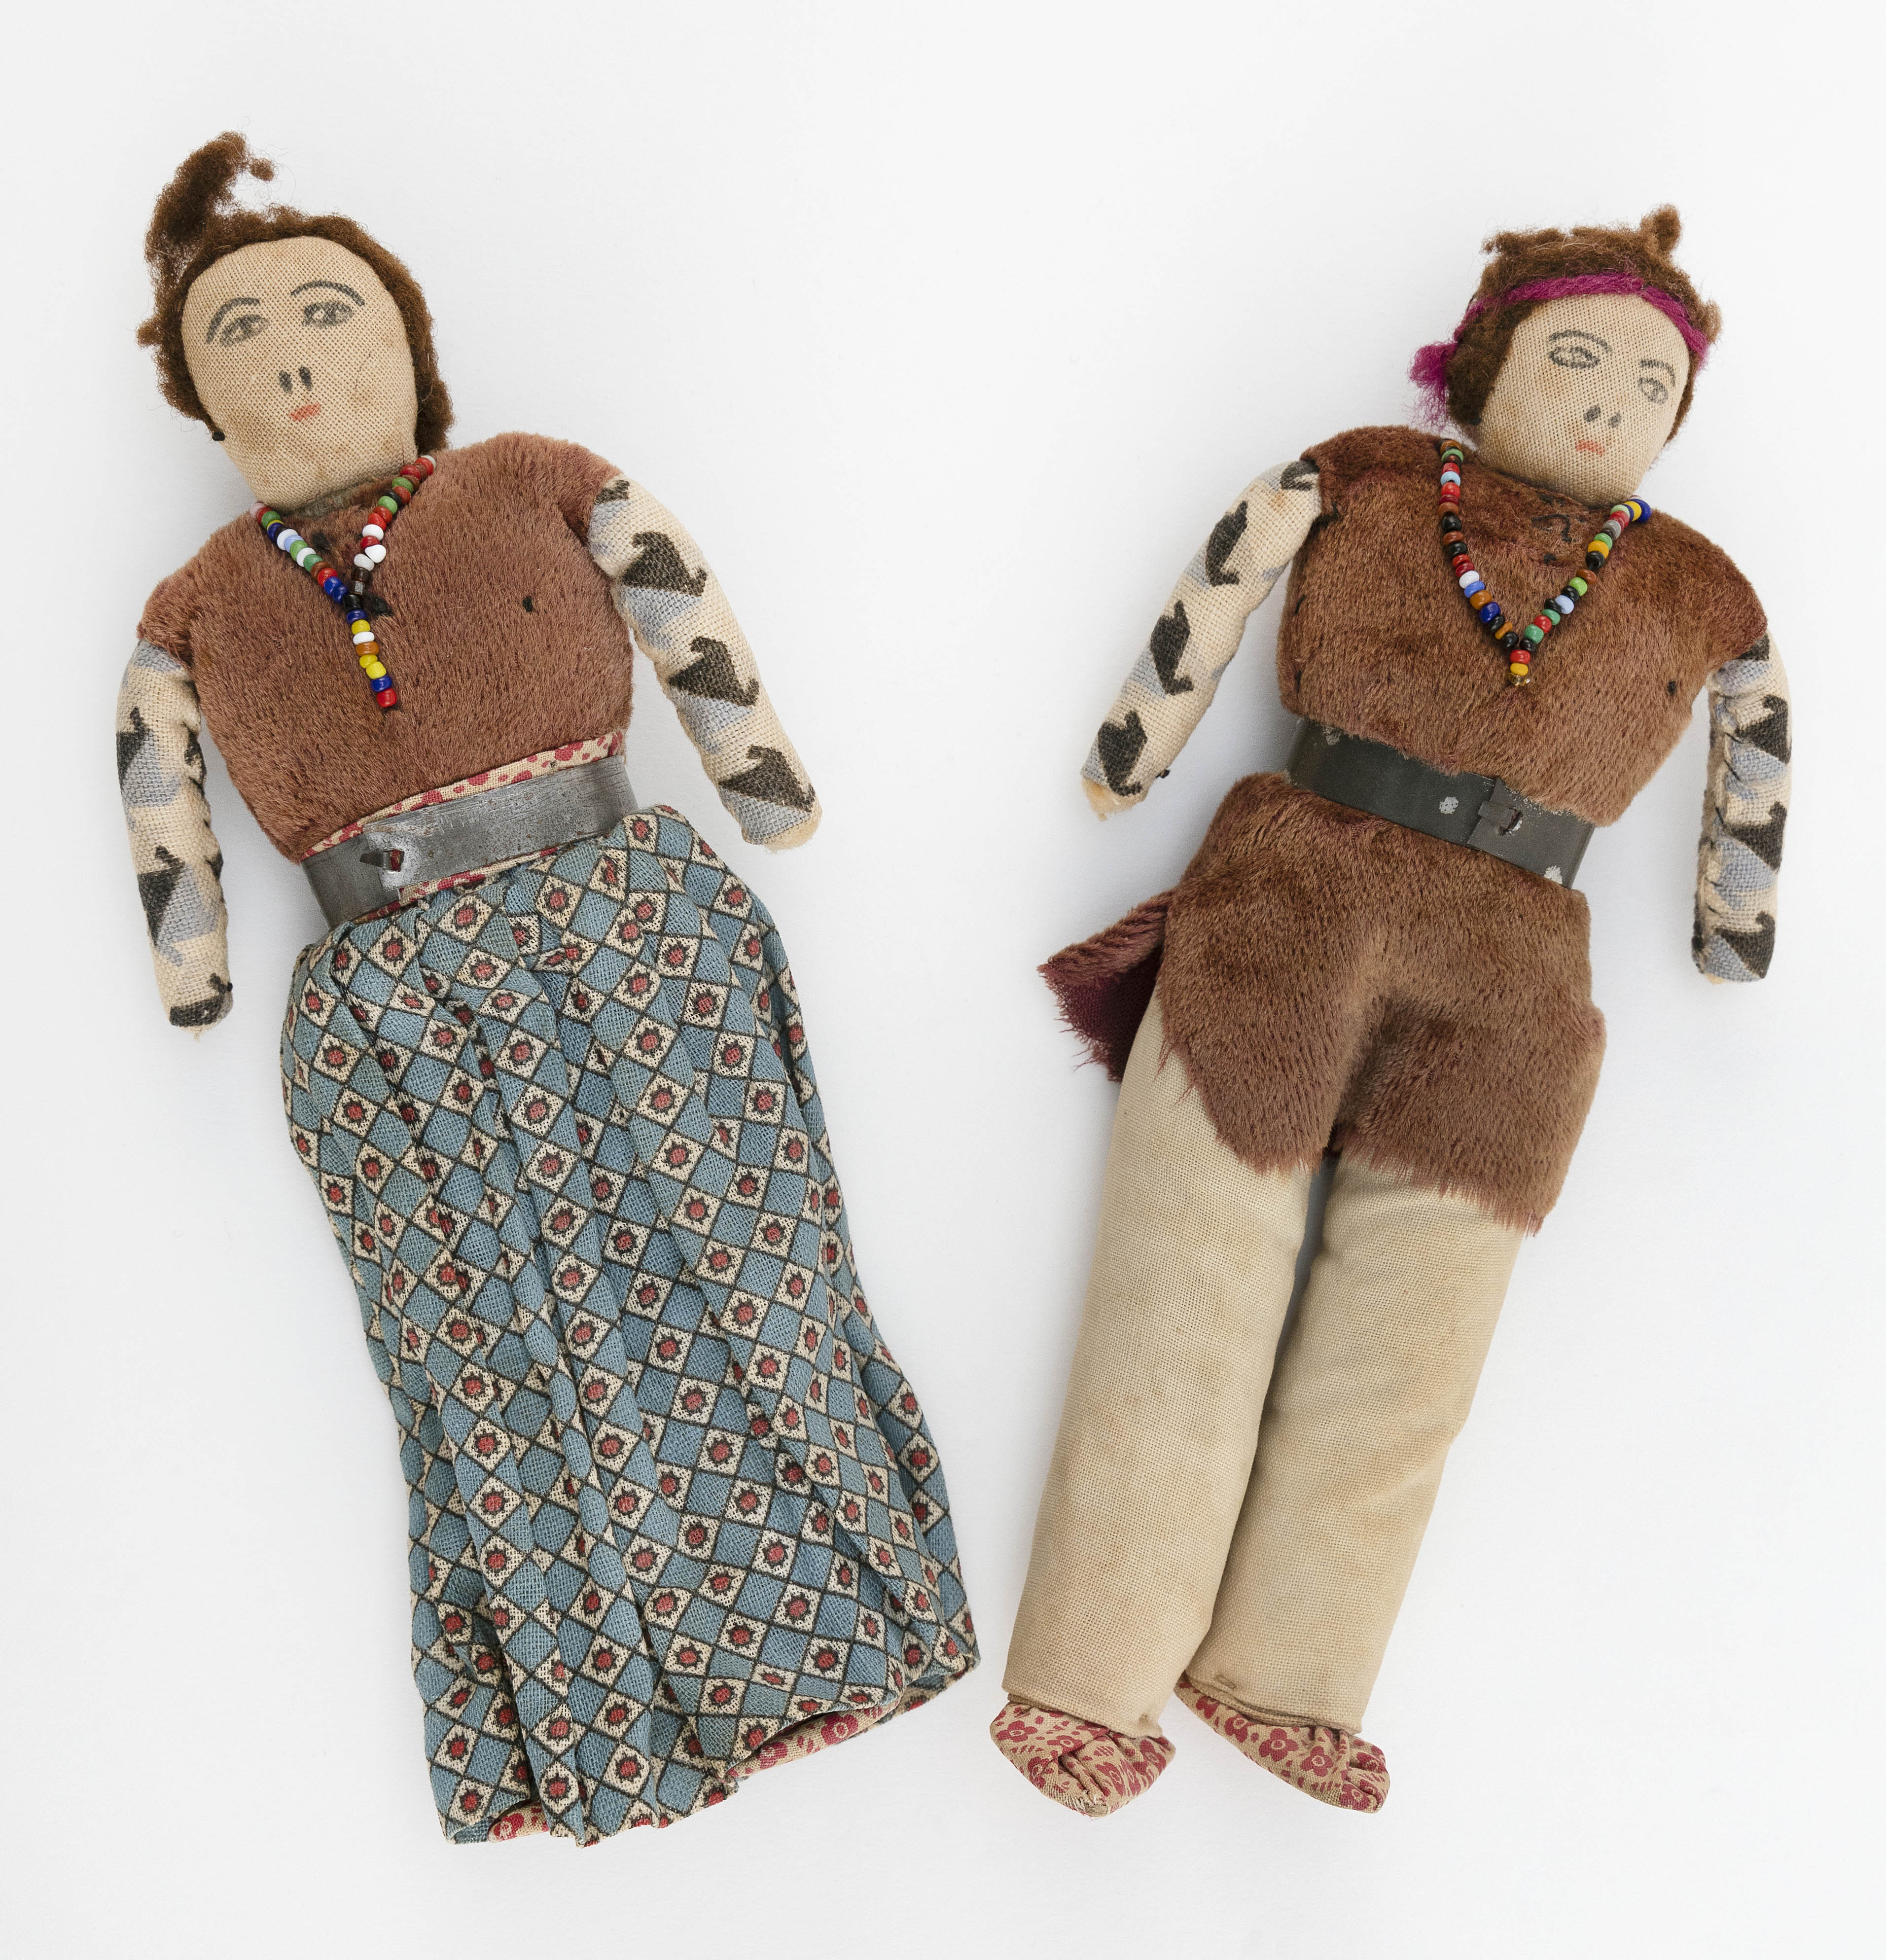 TWO AMERICAN NATIVE CLOTH DOLLS First Half of the 20th Century Heights 7